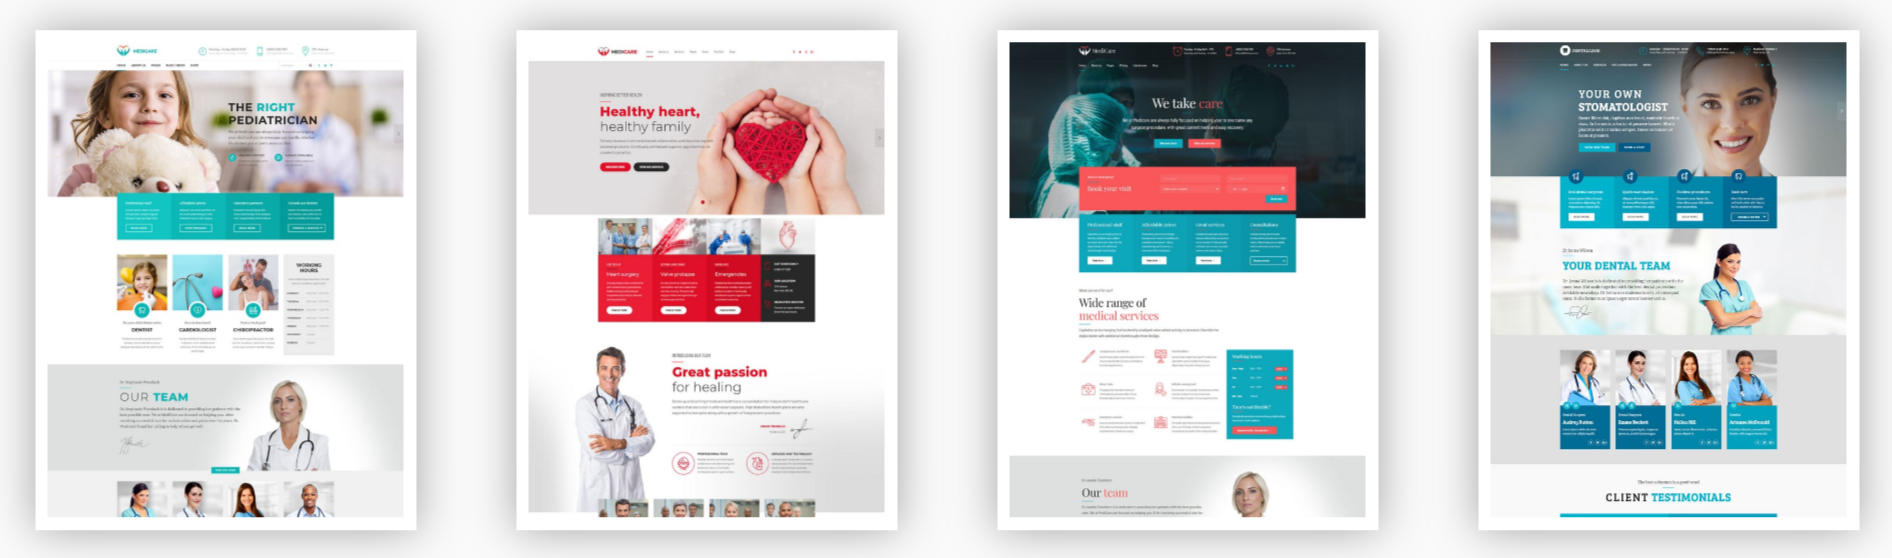 Medicare WordPress theme demos